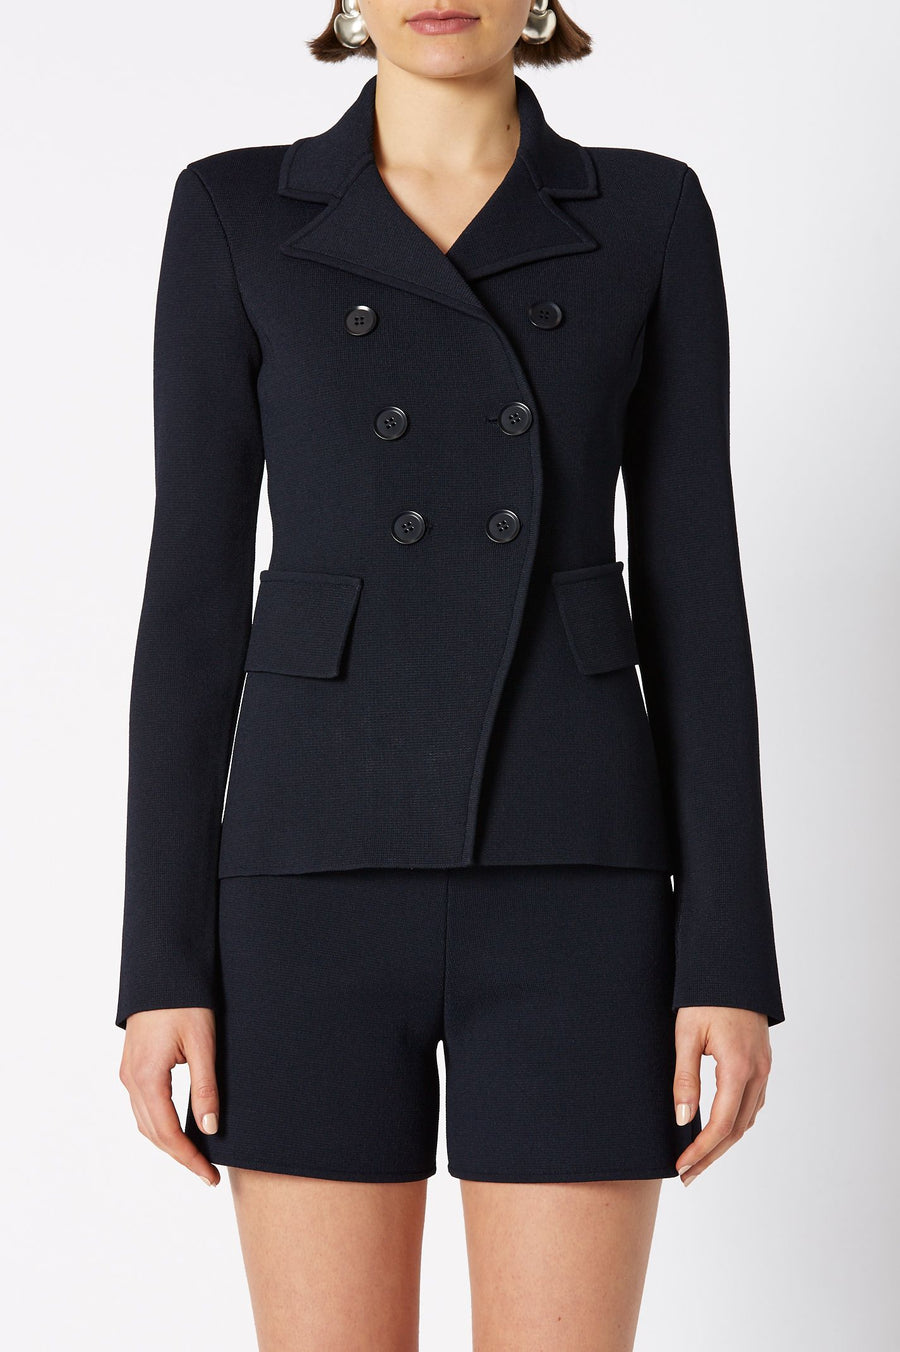 CREPE KNIT TAILORED JACKET, DOUBLE BREASTED, LONG SLEEVE, COLOR NAVY